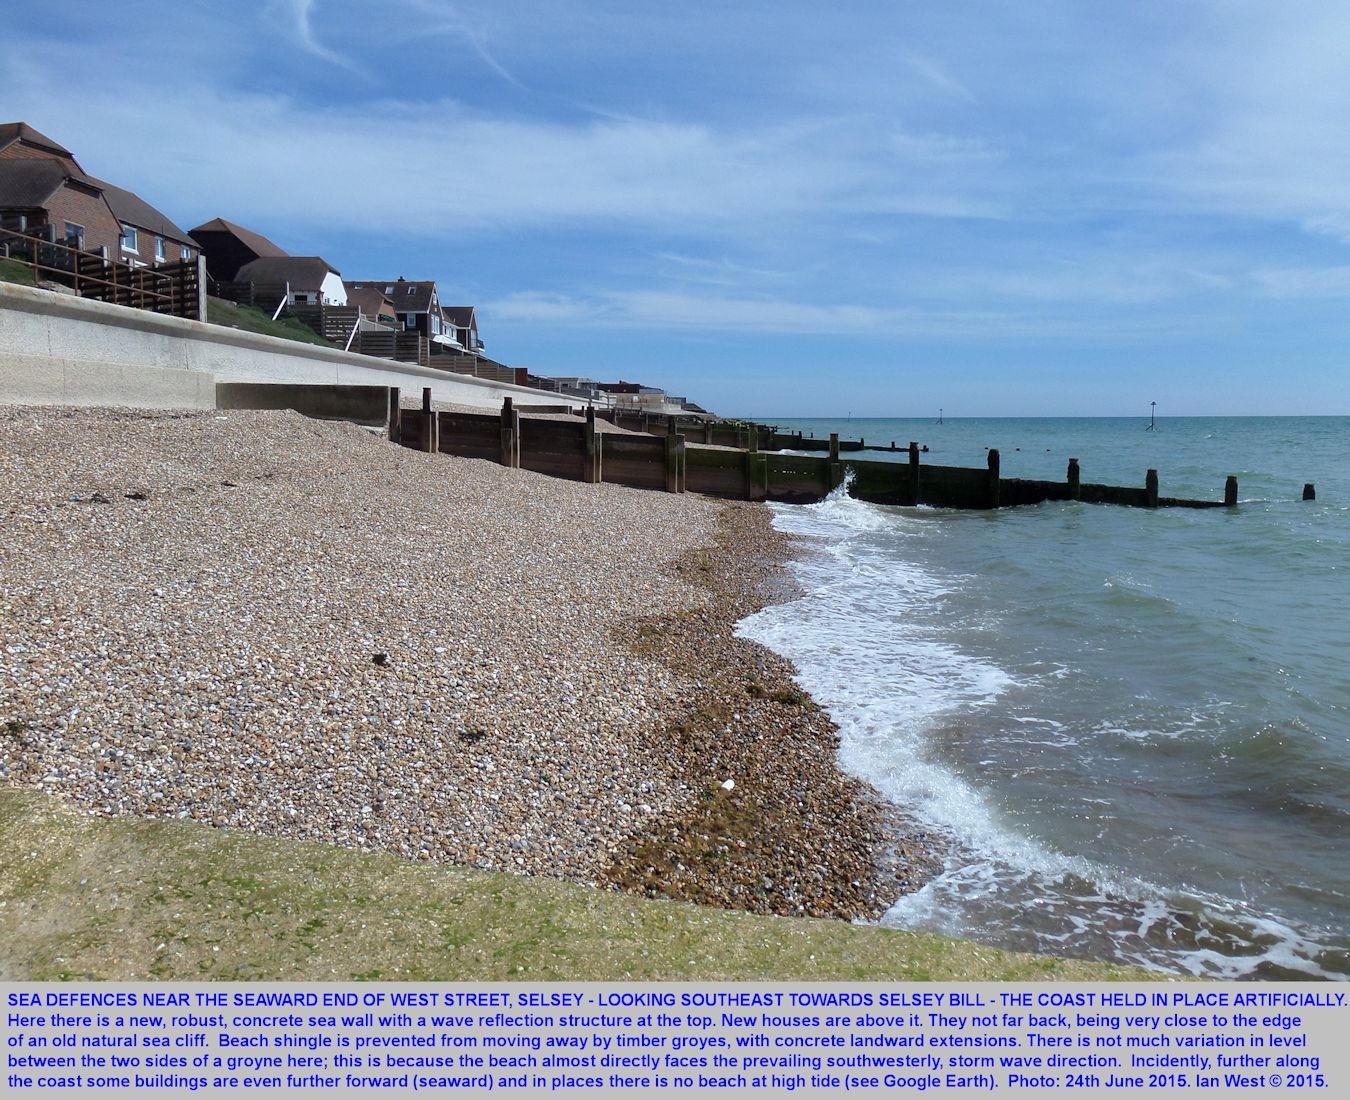 A robust, new concrete wall, and older groynes, are protecting new houses, near the end of West Street, Selsey, Sussex